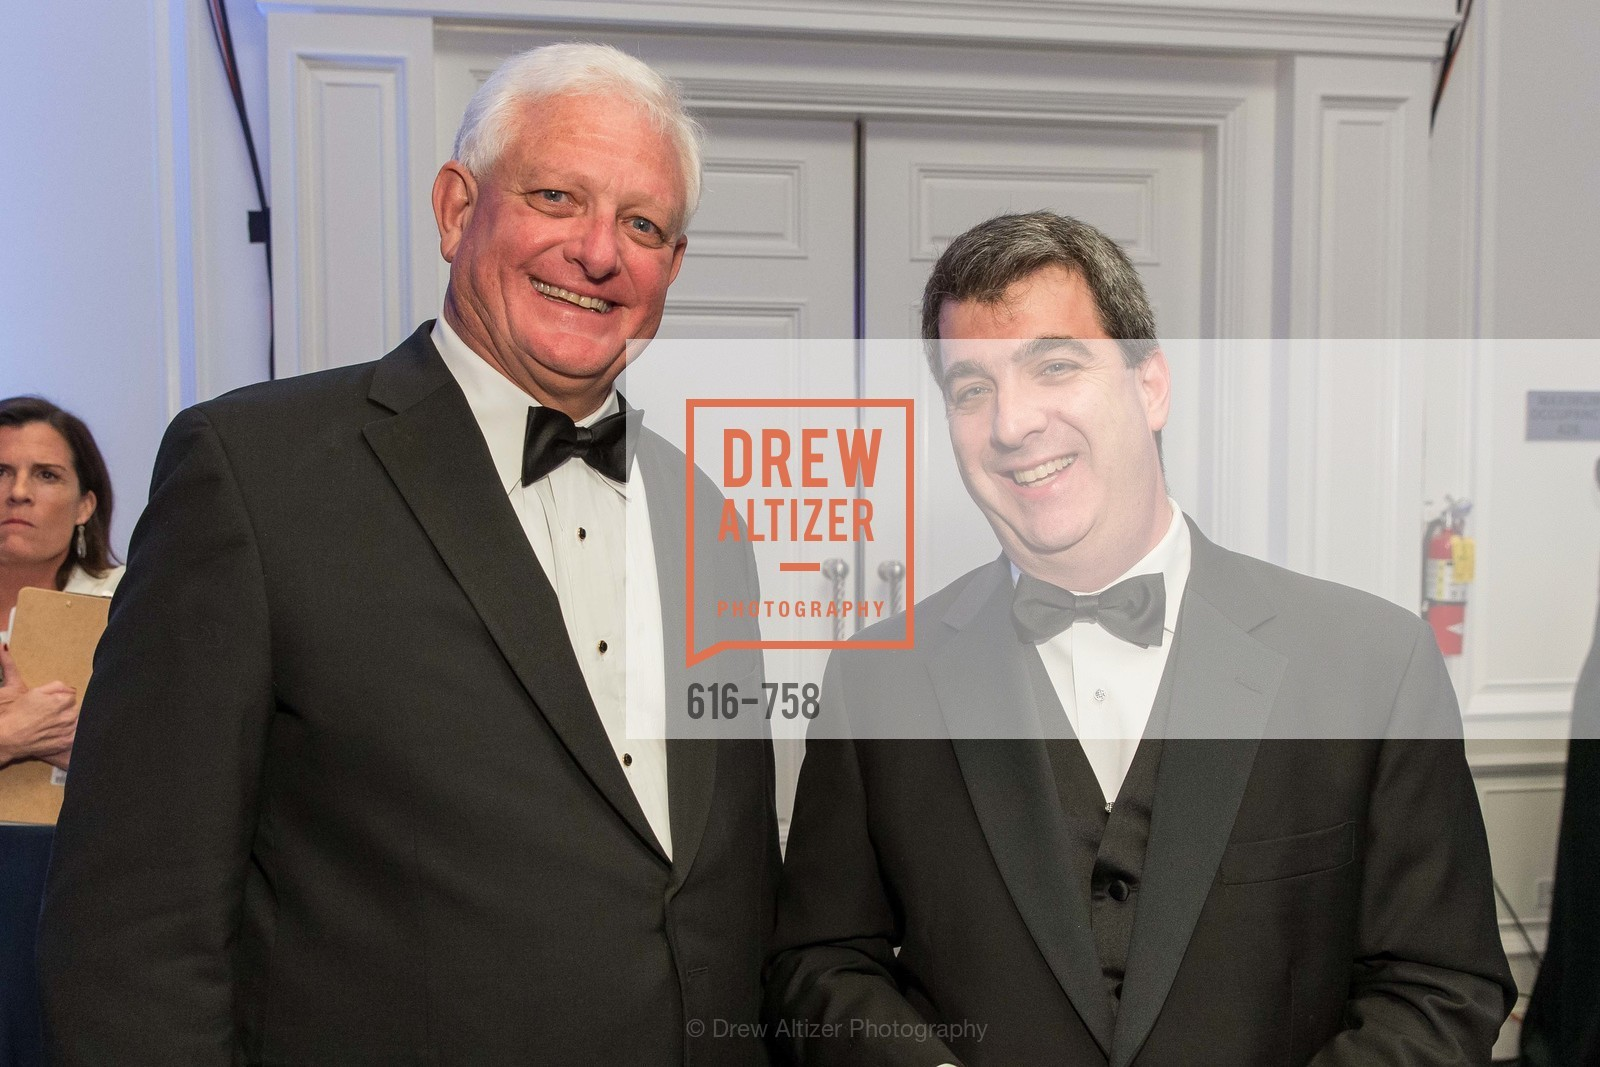 John Brady, Marc Furstein, JUVENILE DIABETES RESEARCH FOUNDATION  Hope Gala, US, May 30th, 2015,Drew Altizer, Drew Altizer Photography, full-service event agency, private events, San Francisco photographer, photographer California